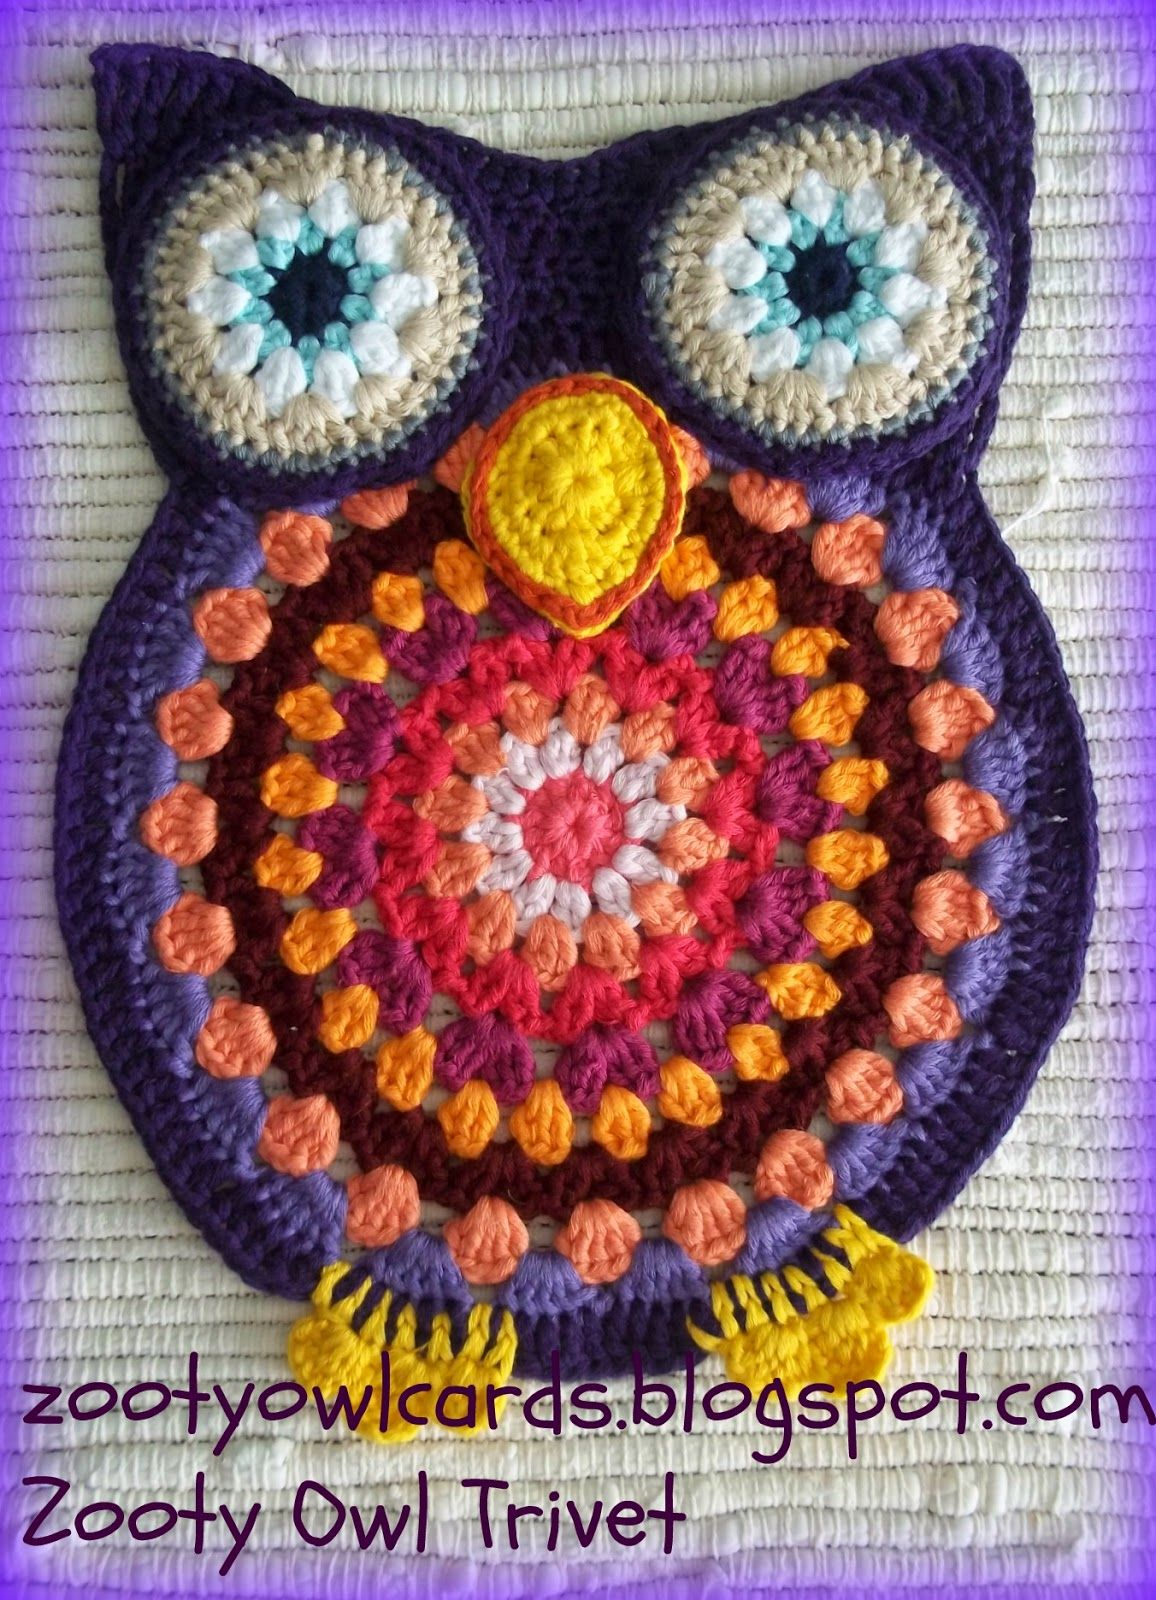 Zooty owl trivets pattern zooty owls crafty blog crochet for zooty owl trivets pattern zooty owls crafty blog bankloansurffo Image collections